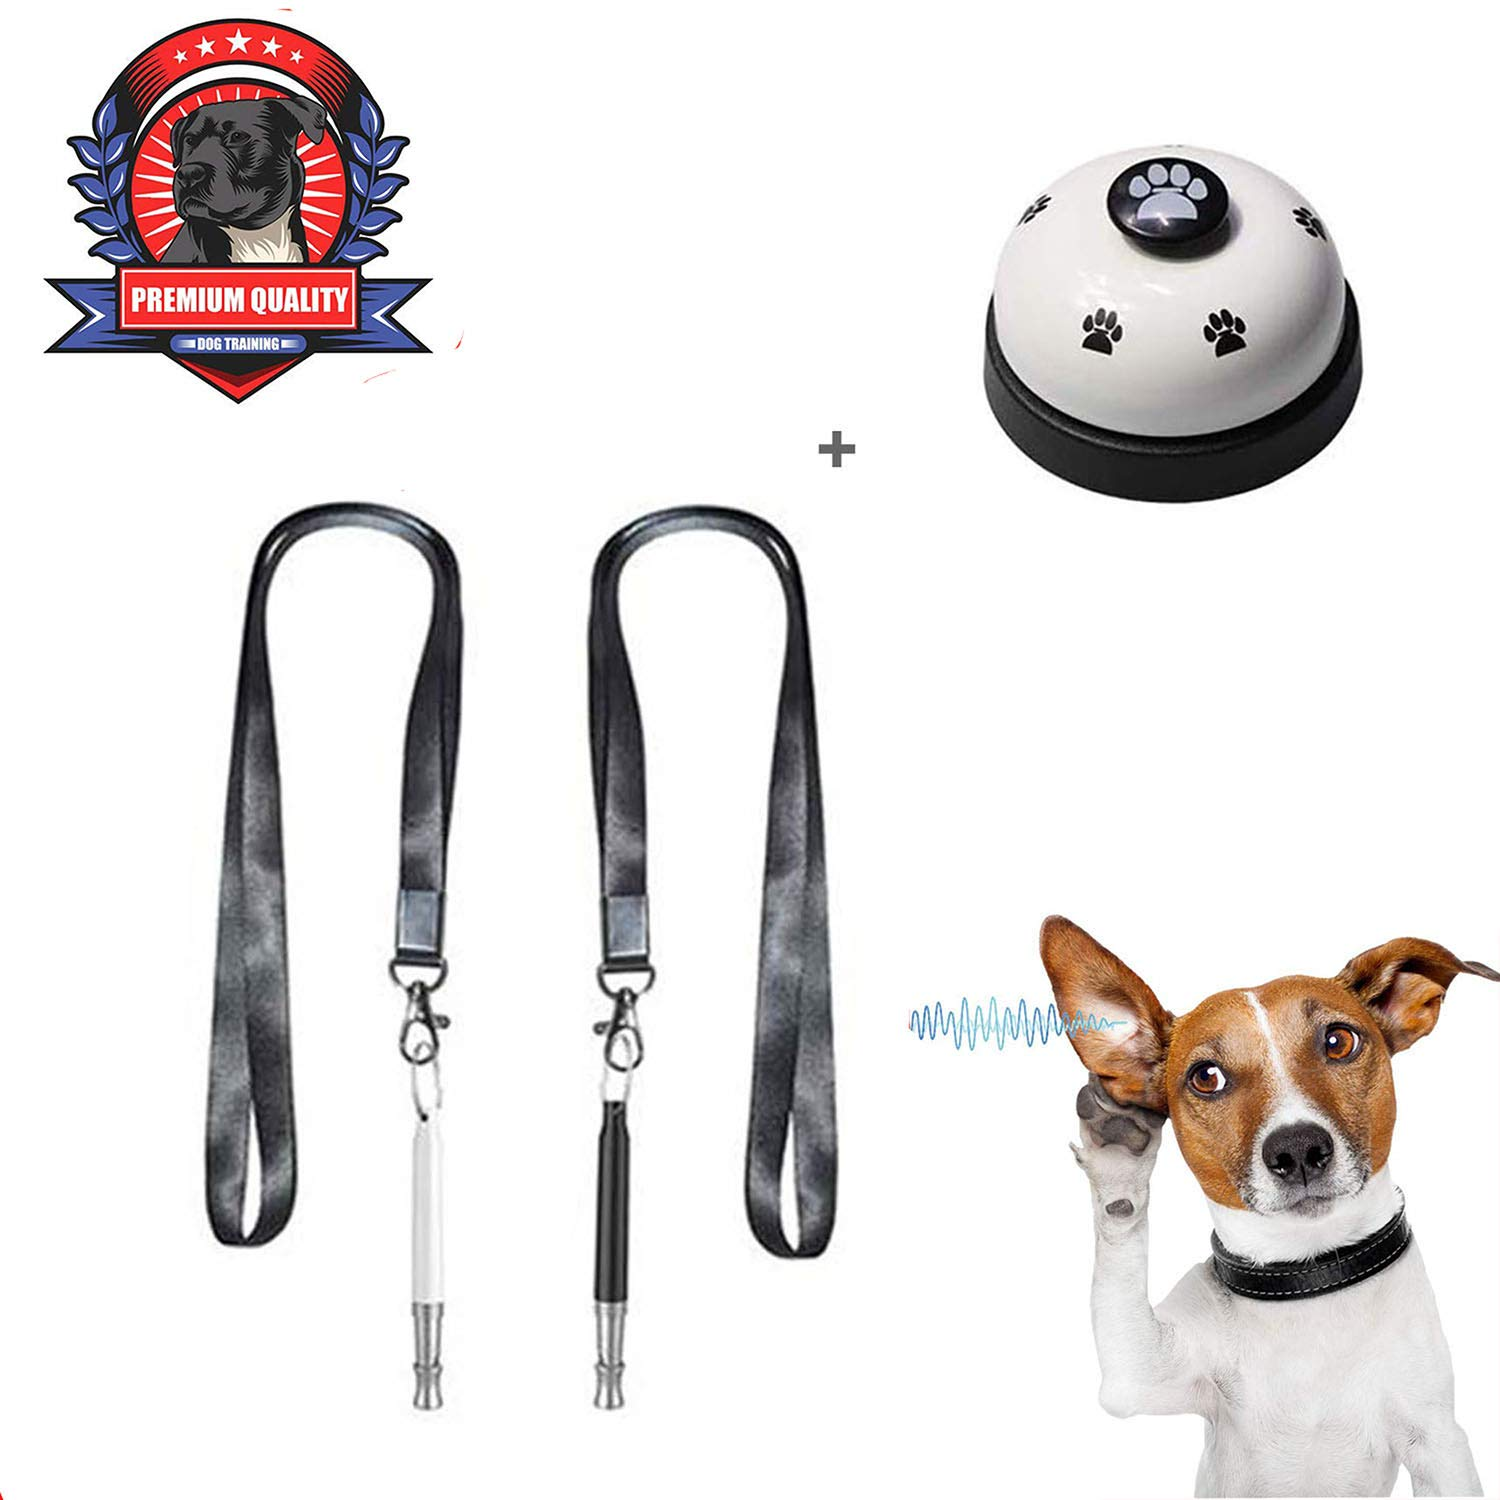 Petawi Professional Dog Whistle to Stop Barking Bark Control Recall Training Tool Adjustable Frequency Pitch Ultrasonic Sound Premium Lanyard Strap &EBOOK Training Guide - 3 Pack (Black+White+Bell) by Petawi